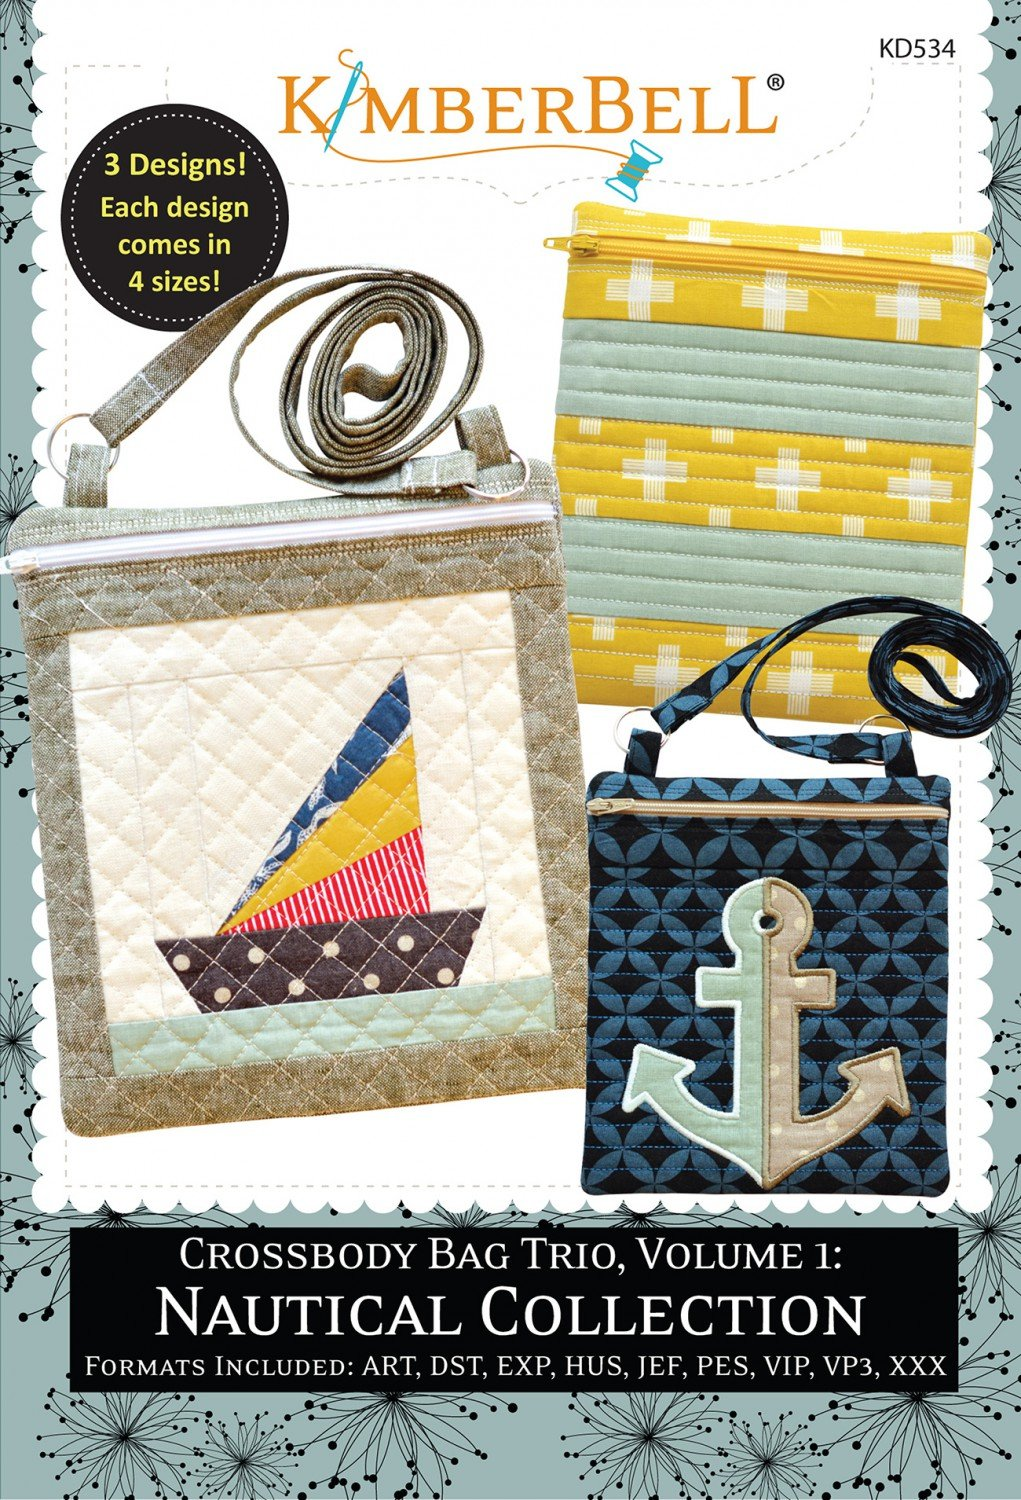 Crossbody Bag Trio - Nautical